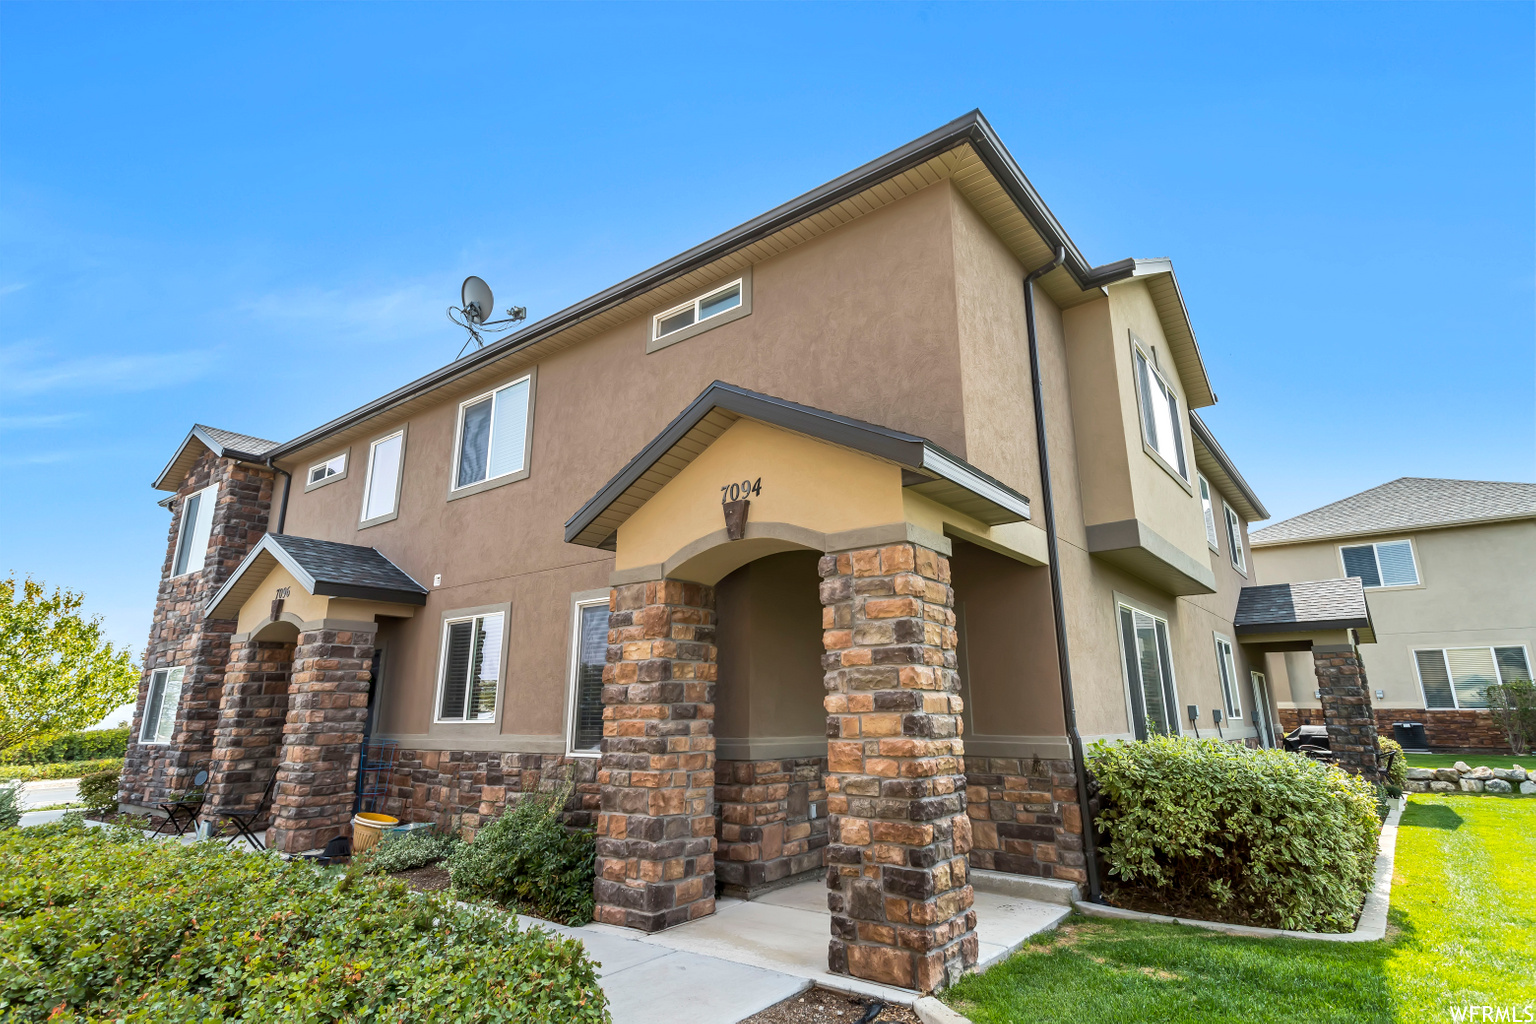 7094 S THORNDALE WAY, West Jordan UT 84084